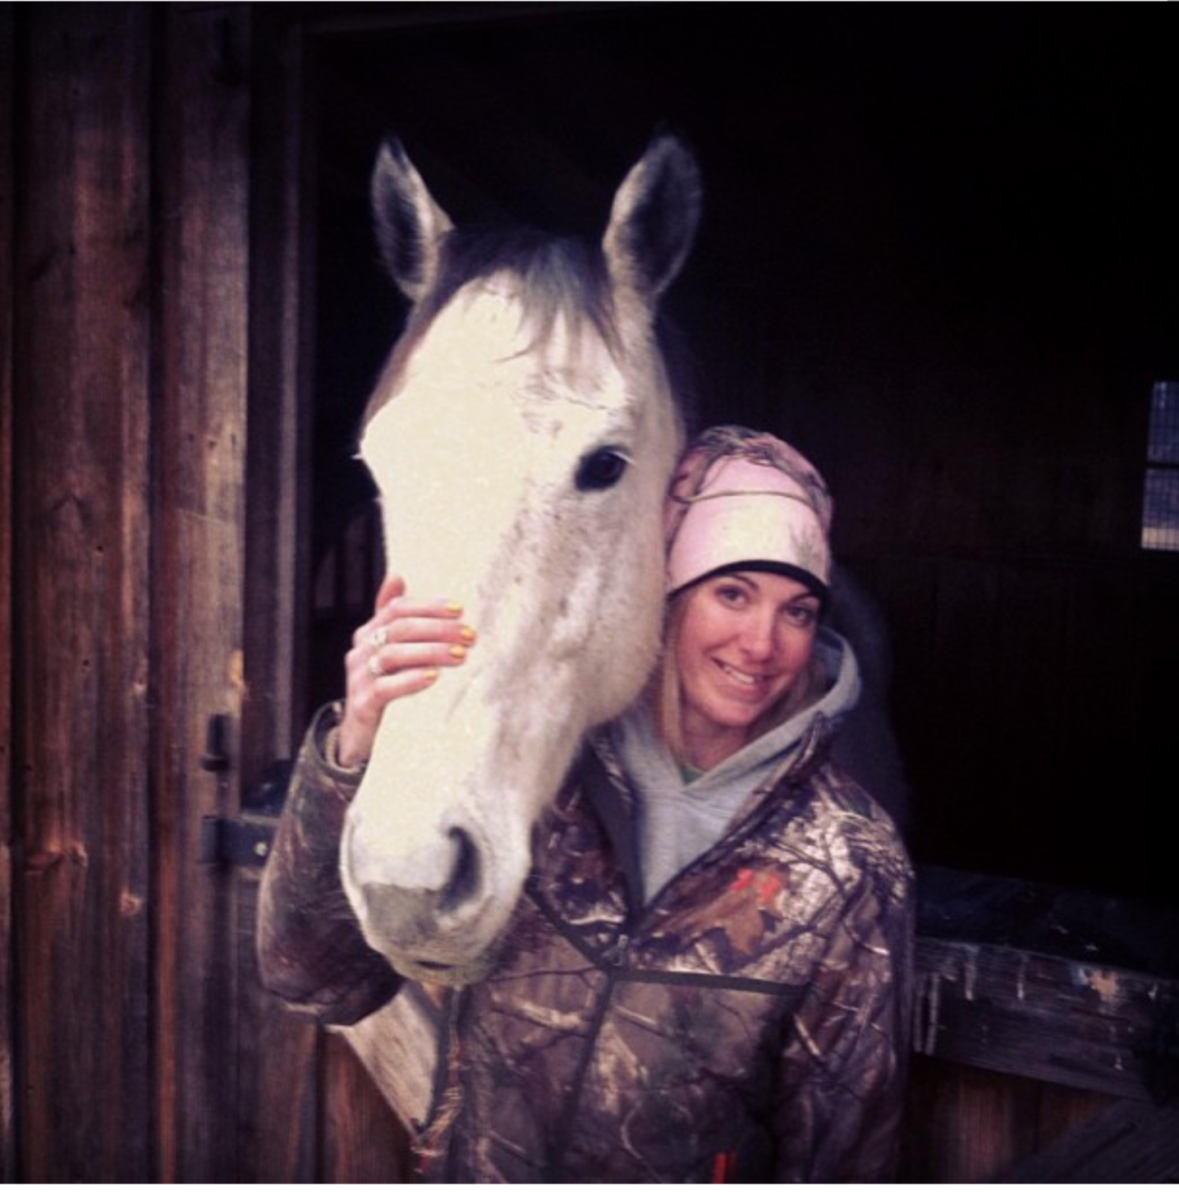 This is Oz, a horse that belonged to a friend of mine. He didn't turn out to be an appropriate horse for her needs, but found a good home through a rescue with contacts who placed him in a good home.